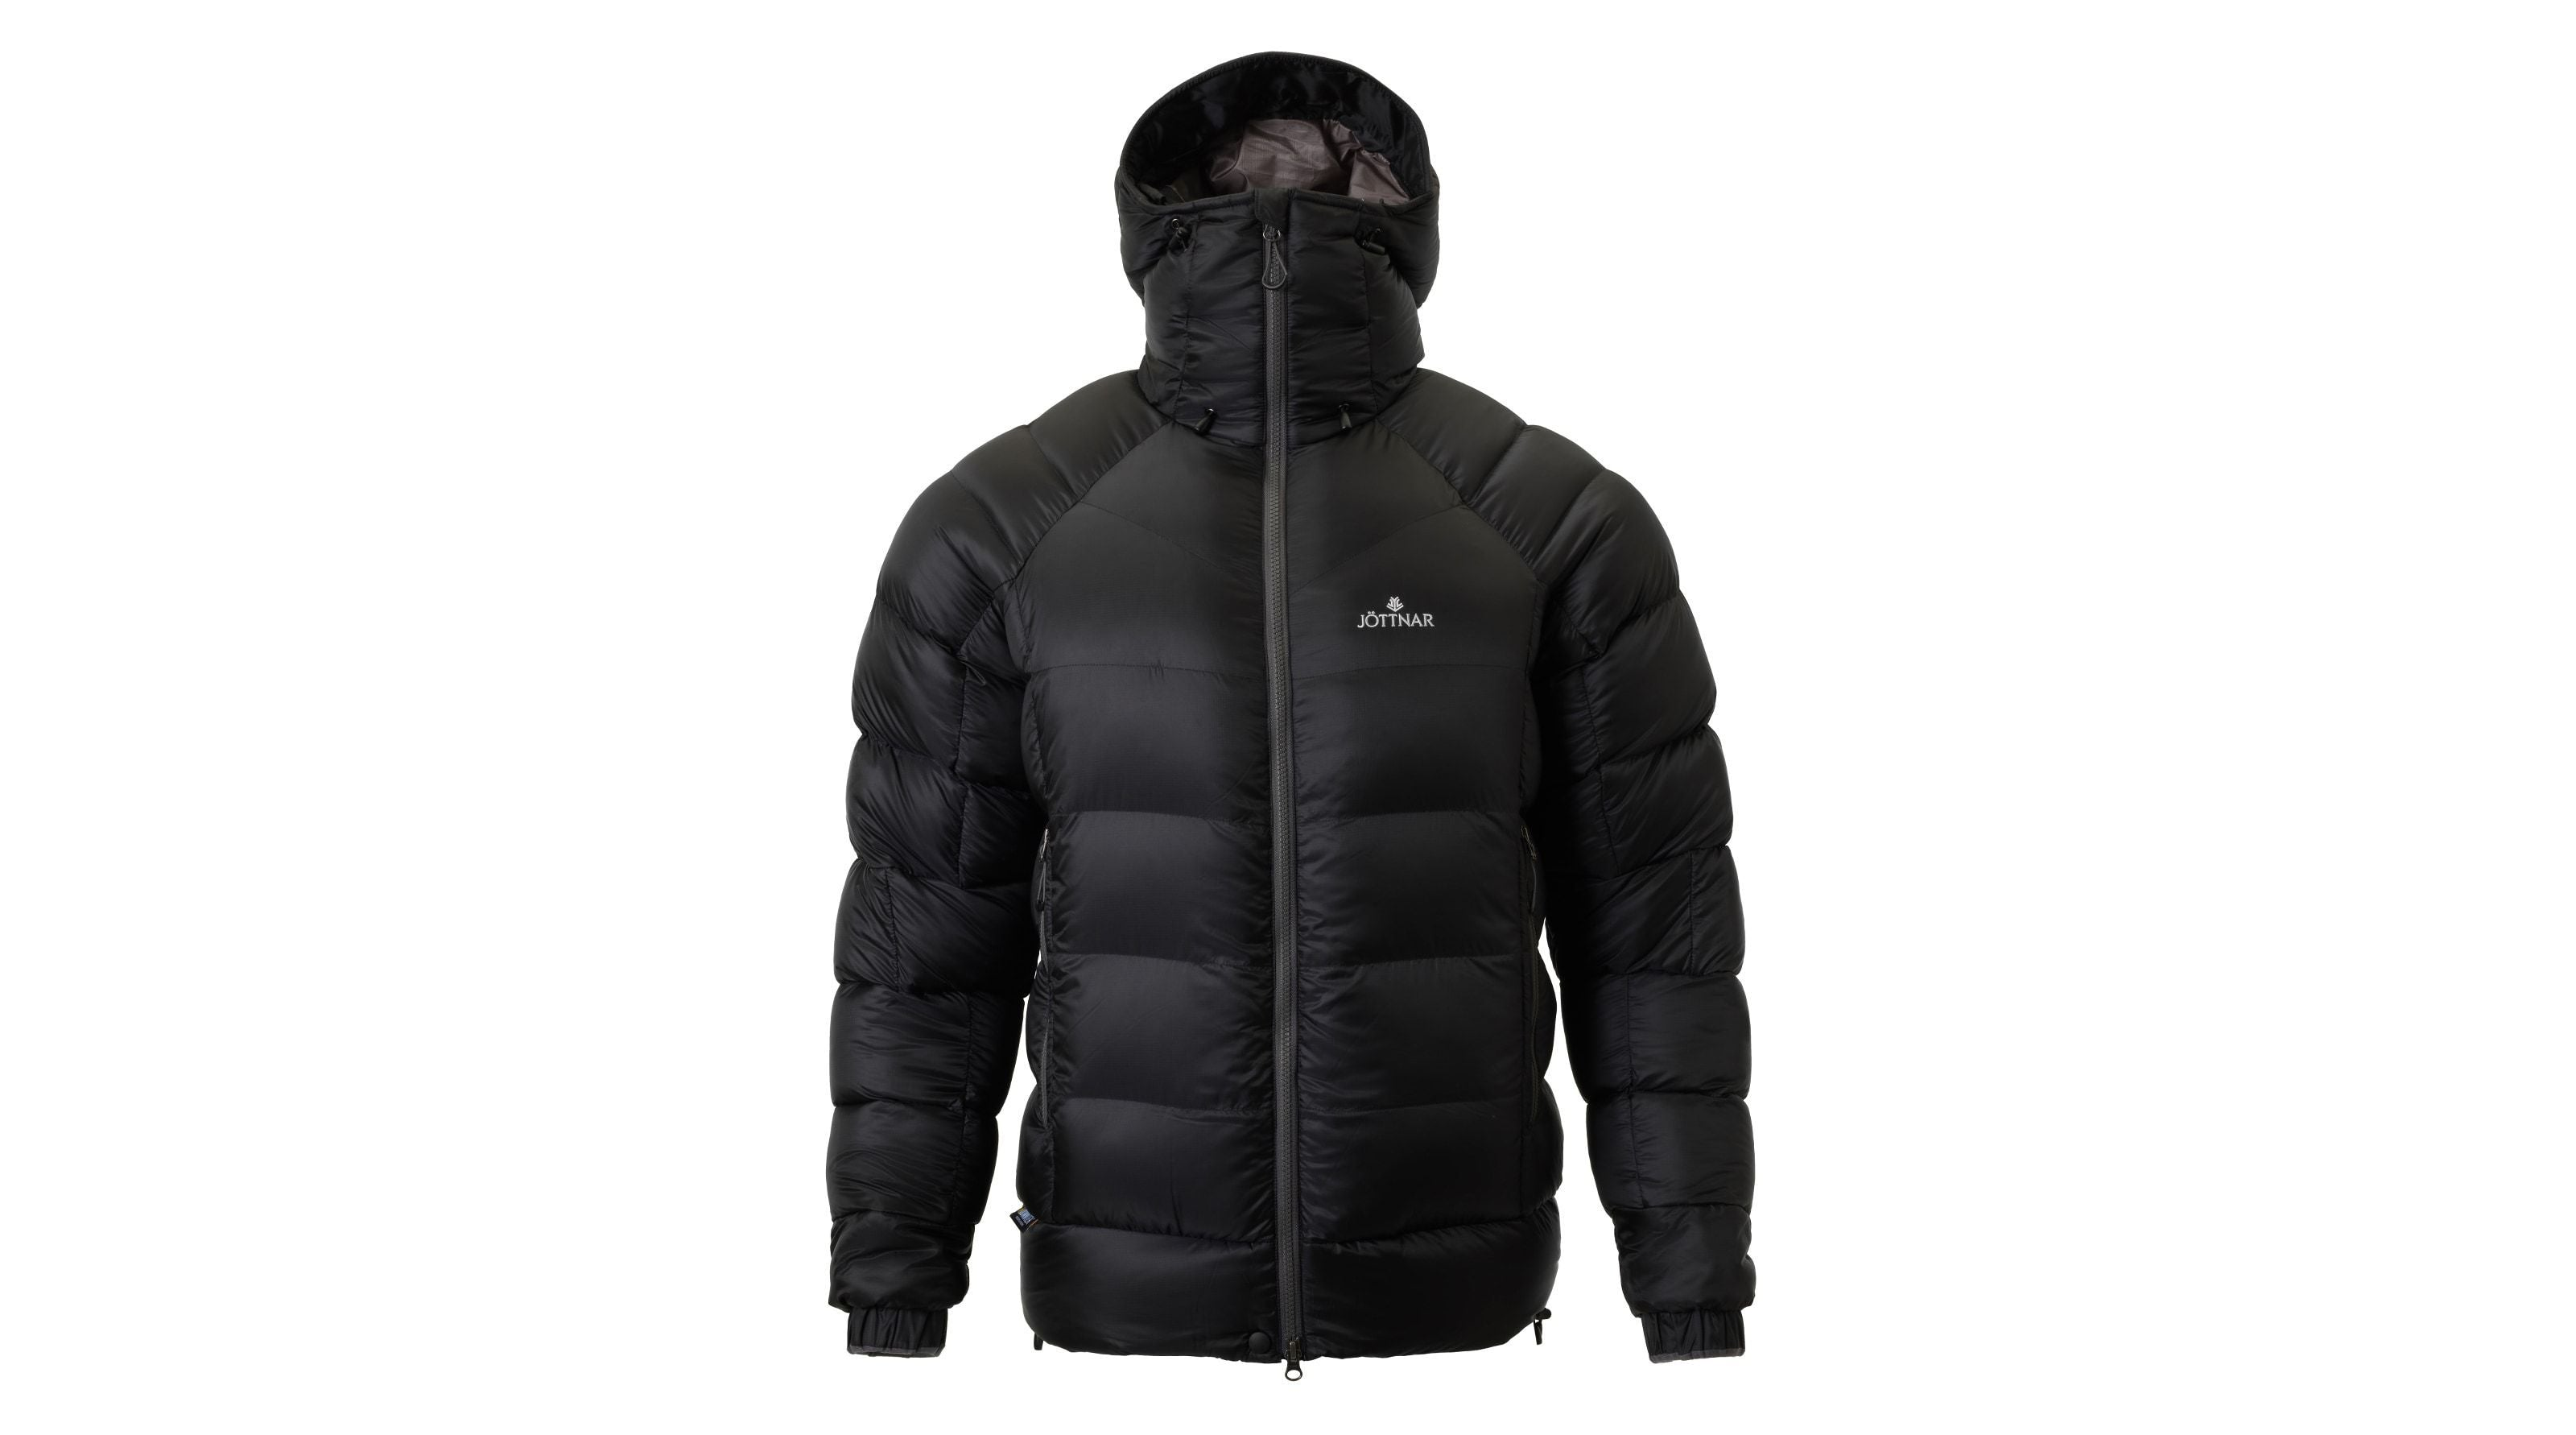 Men's Hydrophobic Goose Down Jacket | 850 Fill Power | Fjorm